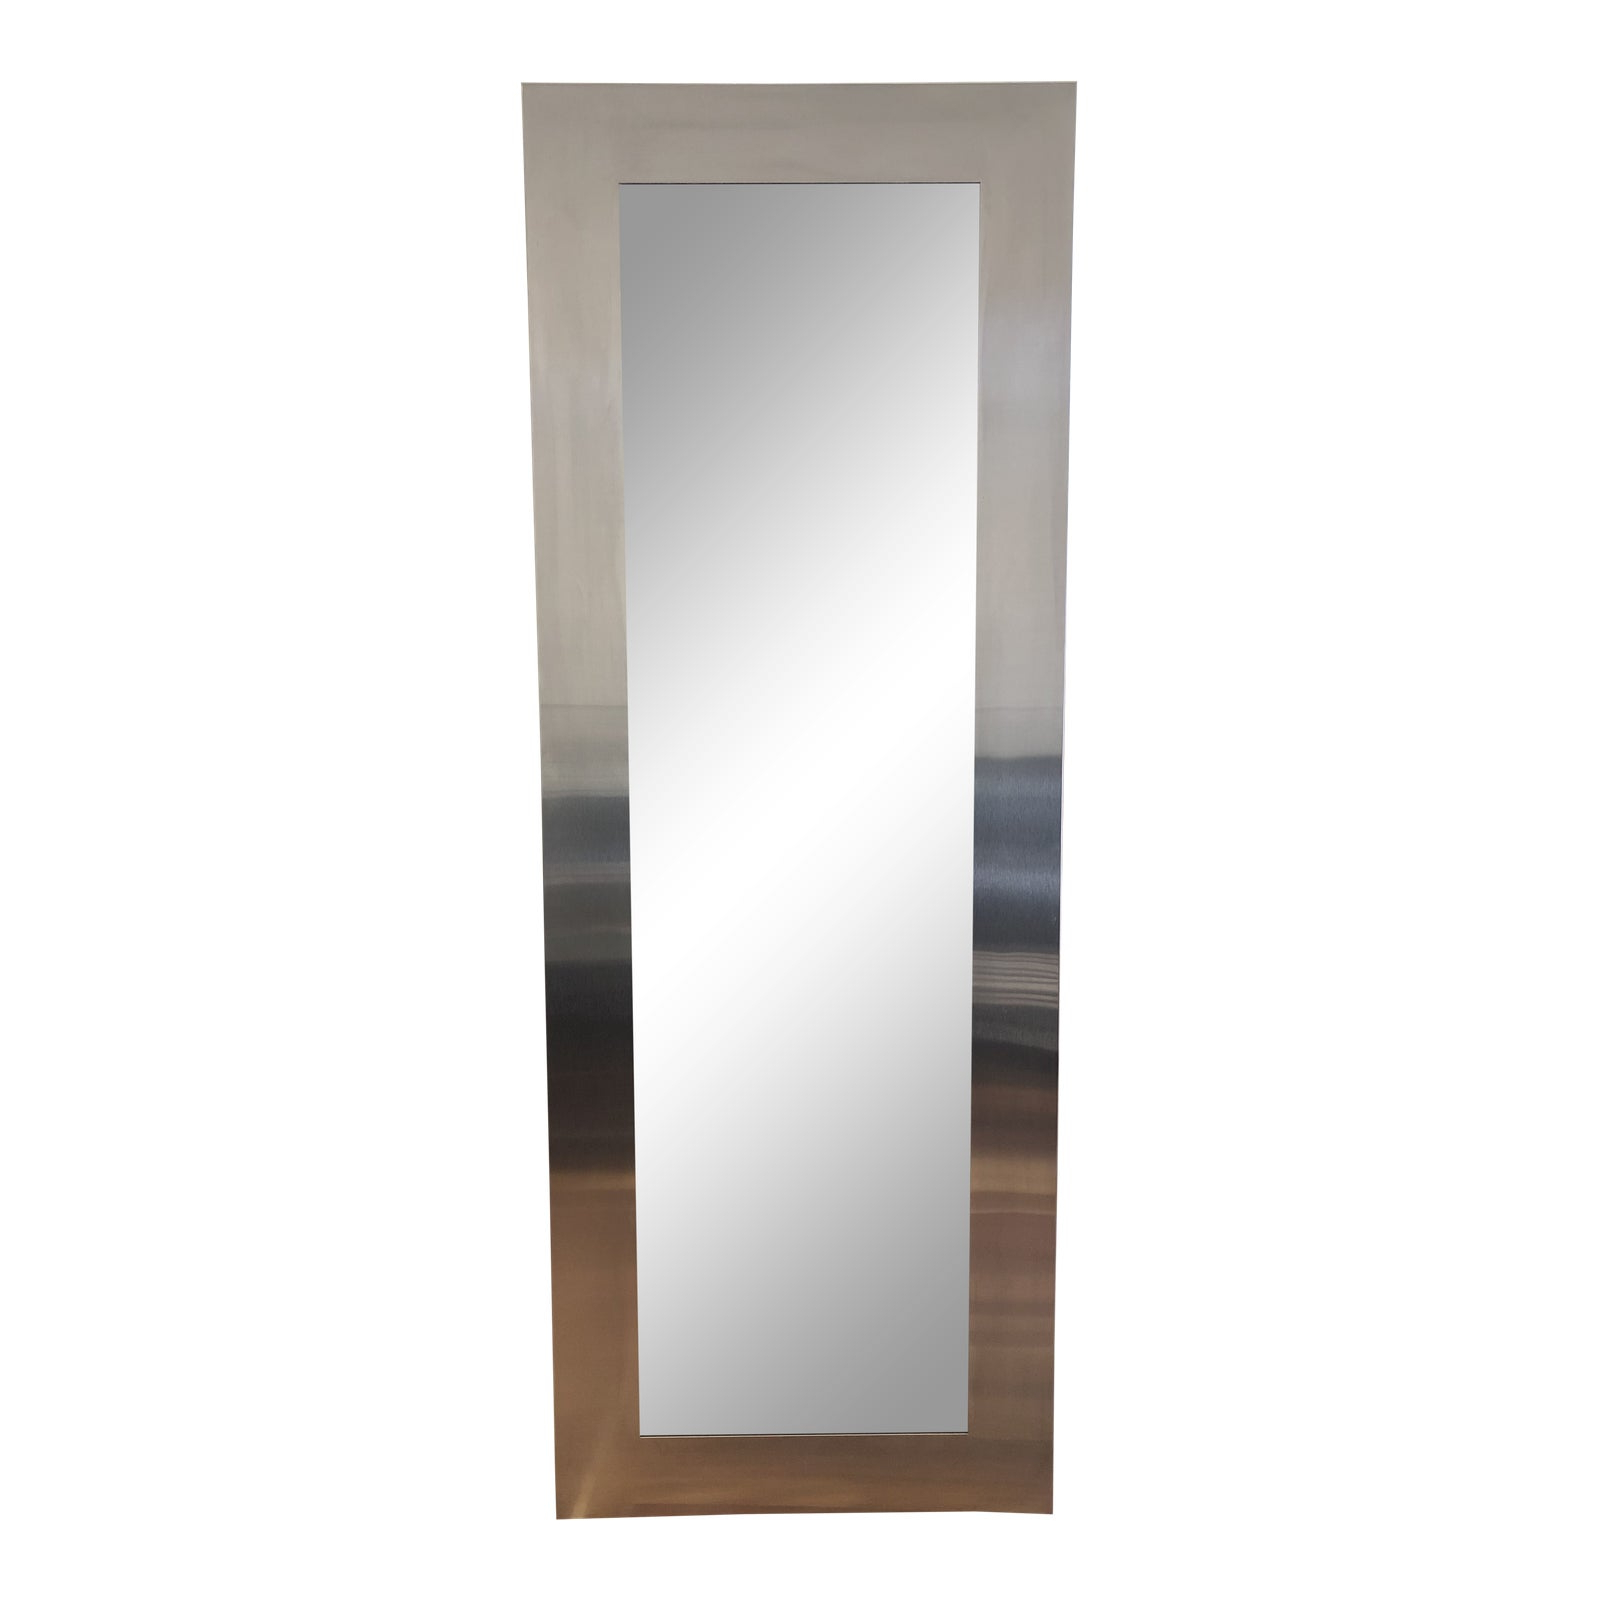 Full Length Wavy Wall Mirrors Regarding Well Known Tips: Leaning Mirror For Home Accessories (View 5 of 20)